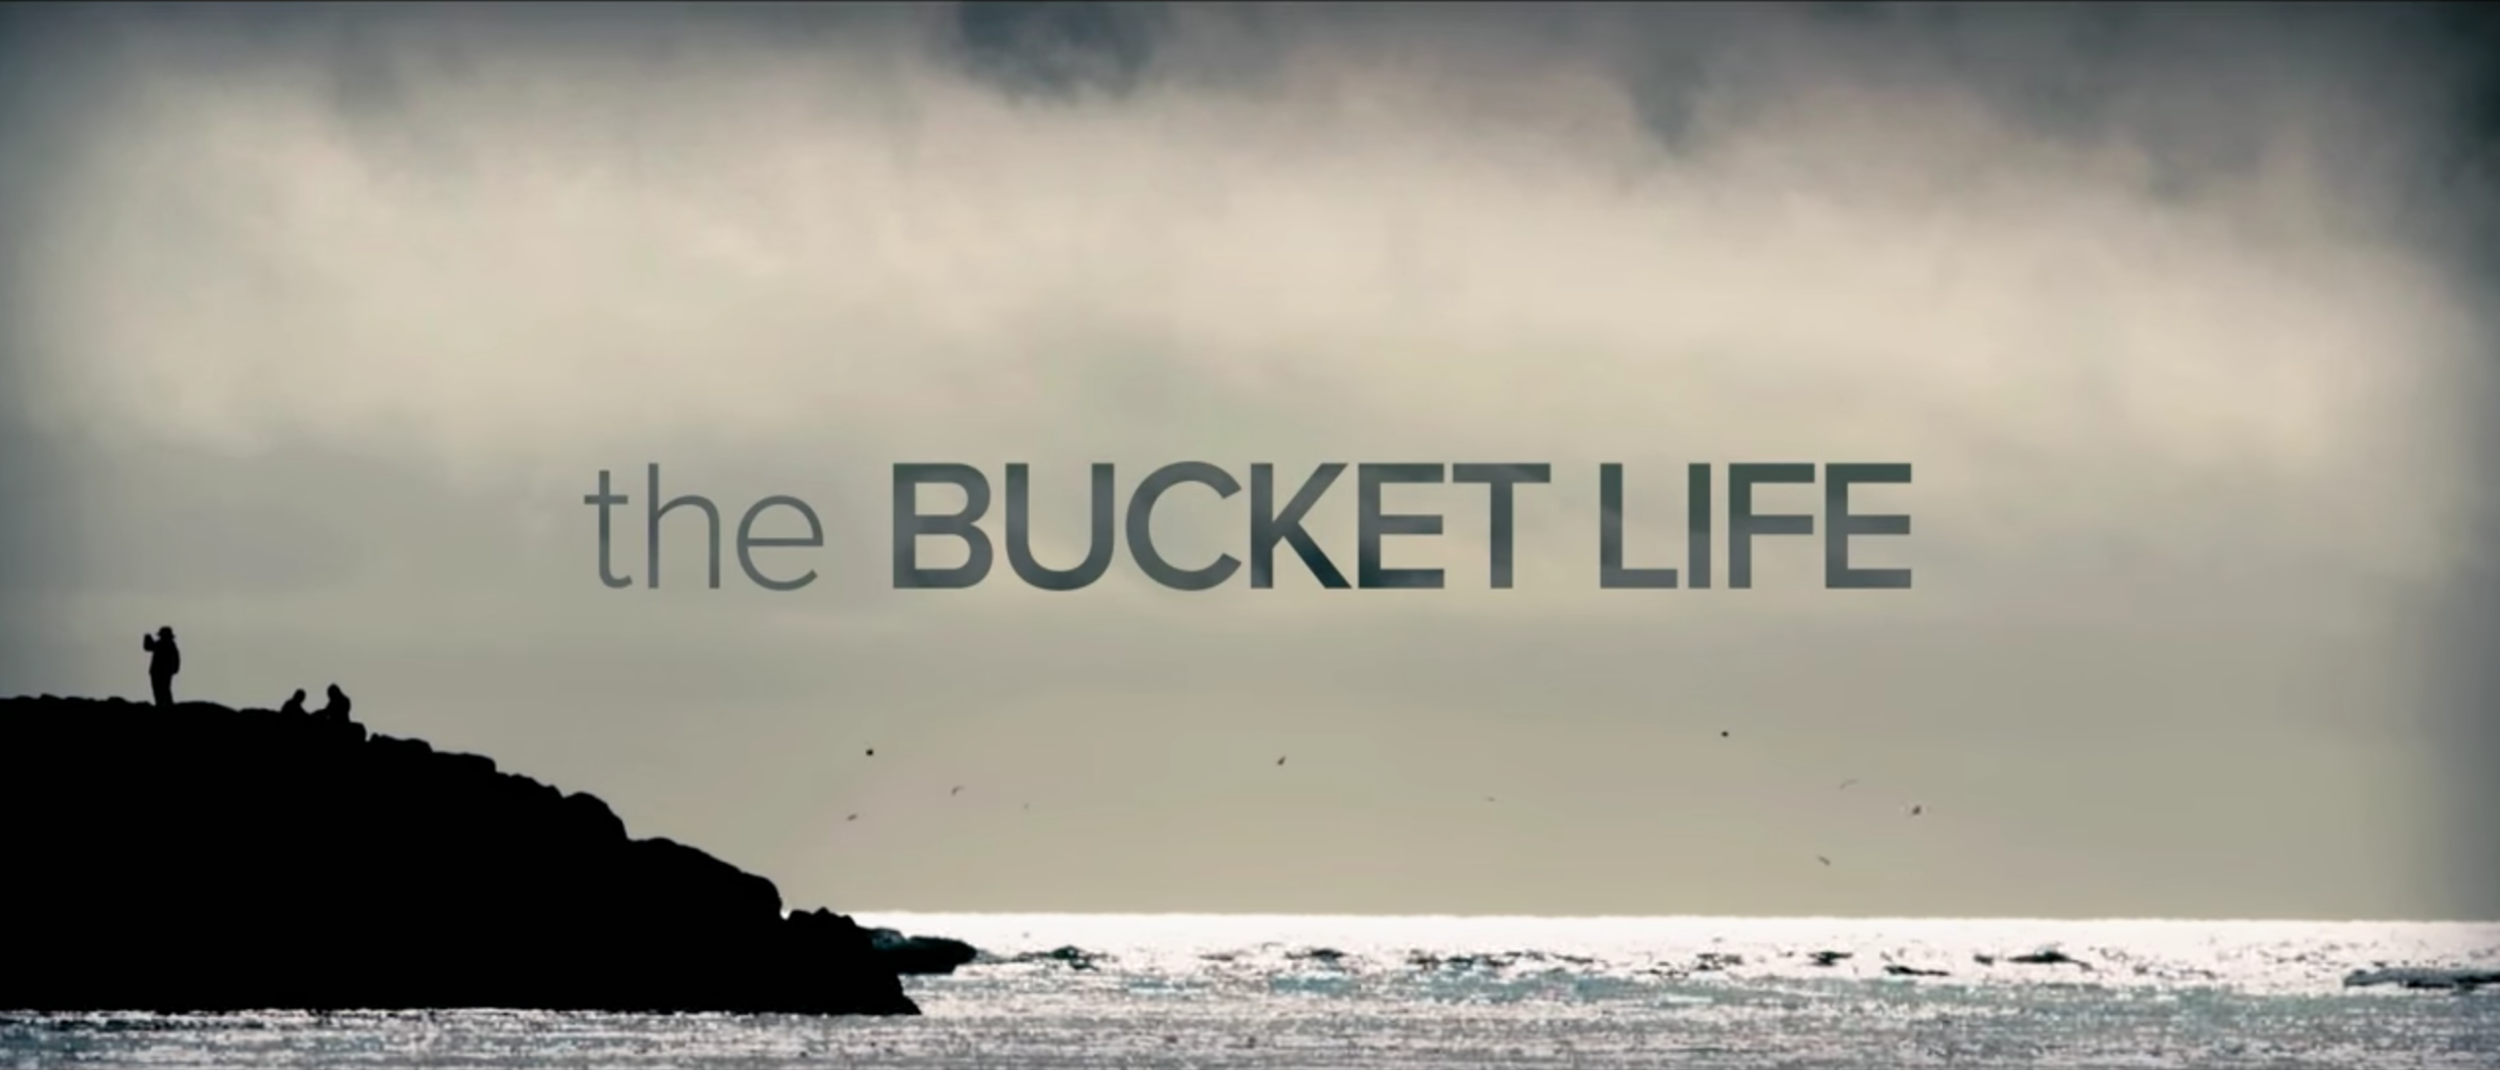 Copy of The Bucket Life